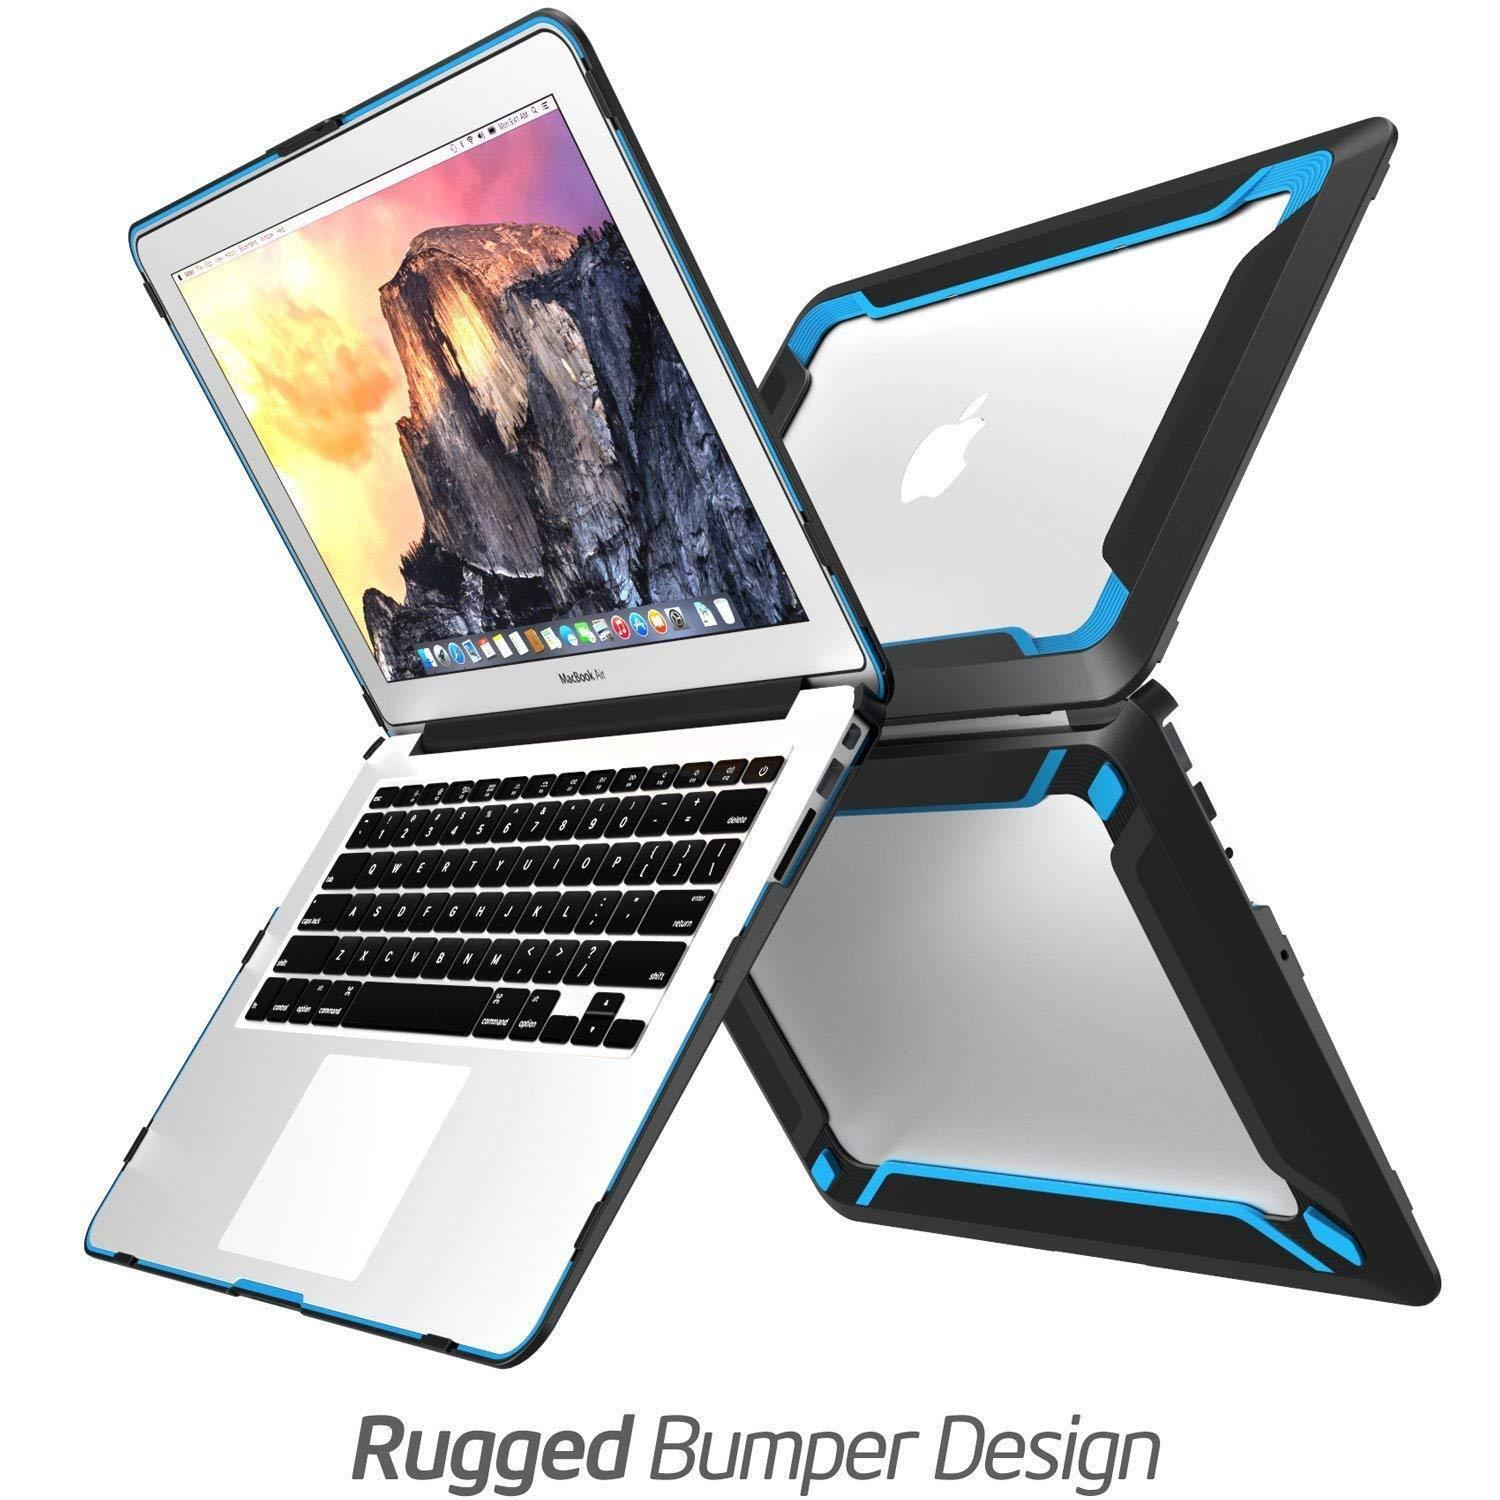 как выглядит Сумка или чехол для ноутбука Macbook Air 13 Case, NexCase Heavy Duty Dual Layer Hard TPU Bumper Case Cover US фото